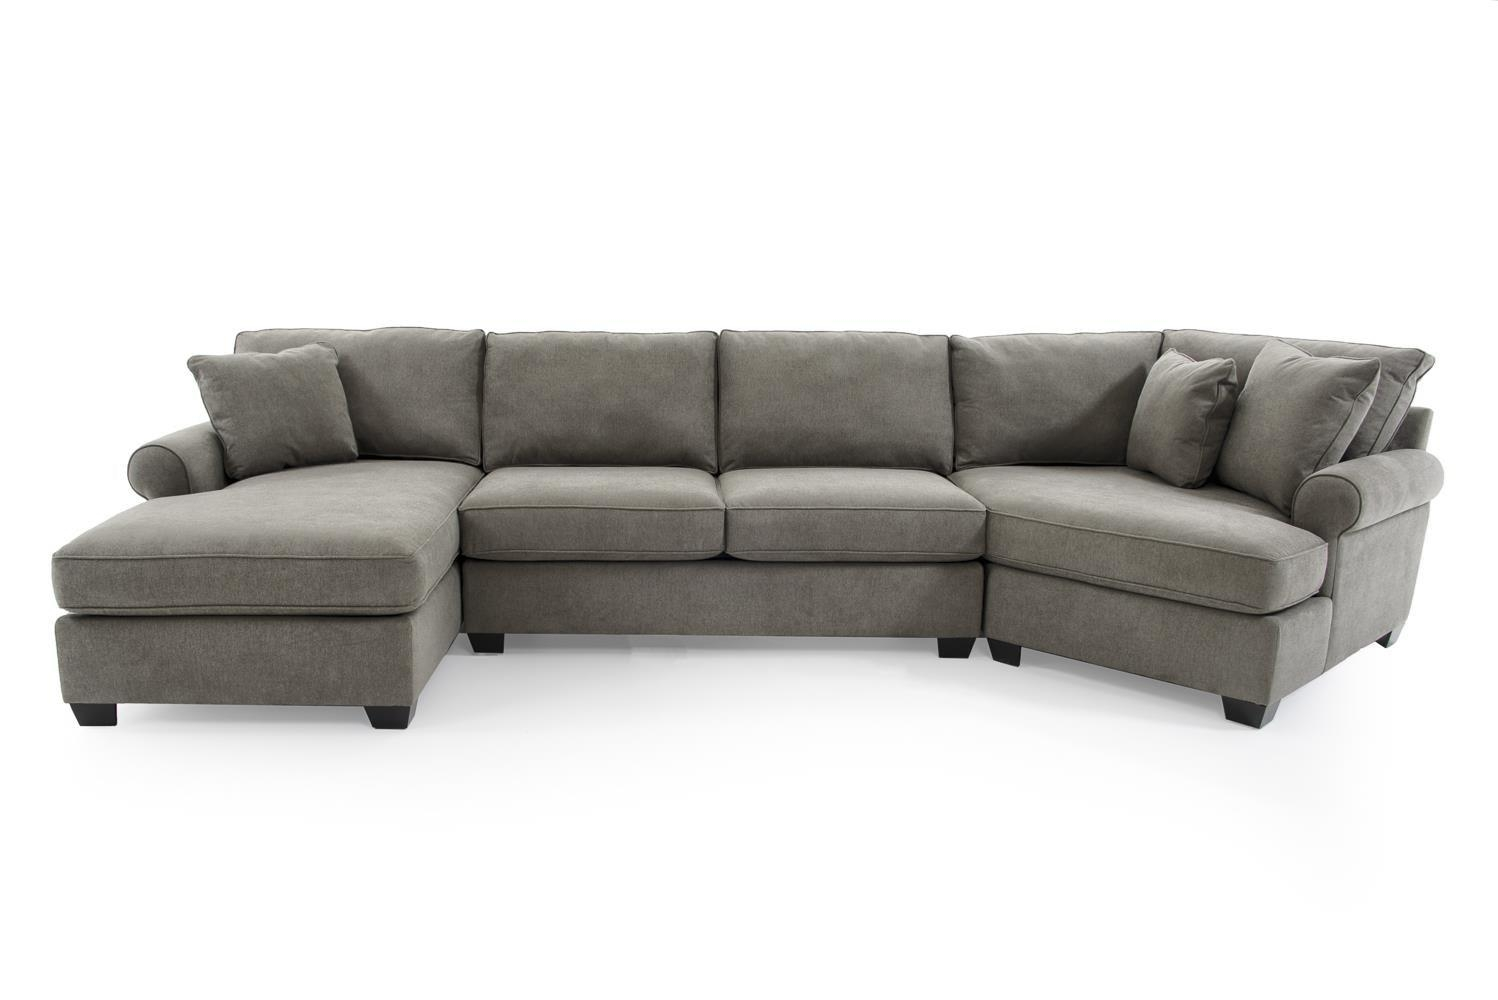 Max Home Jessica Casual Three Piece Sectional Sofa With Cuddler In Cuddler Sectional Sofa (View 11 of 15)